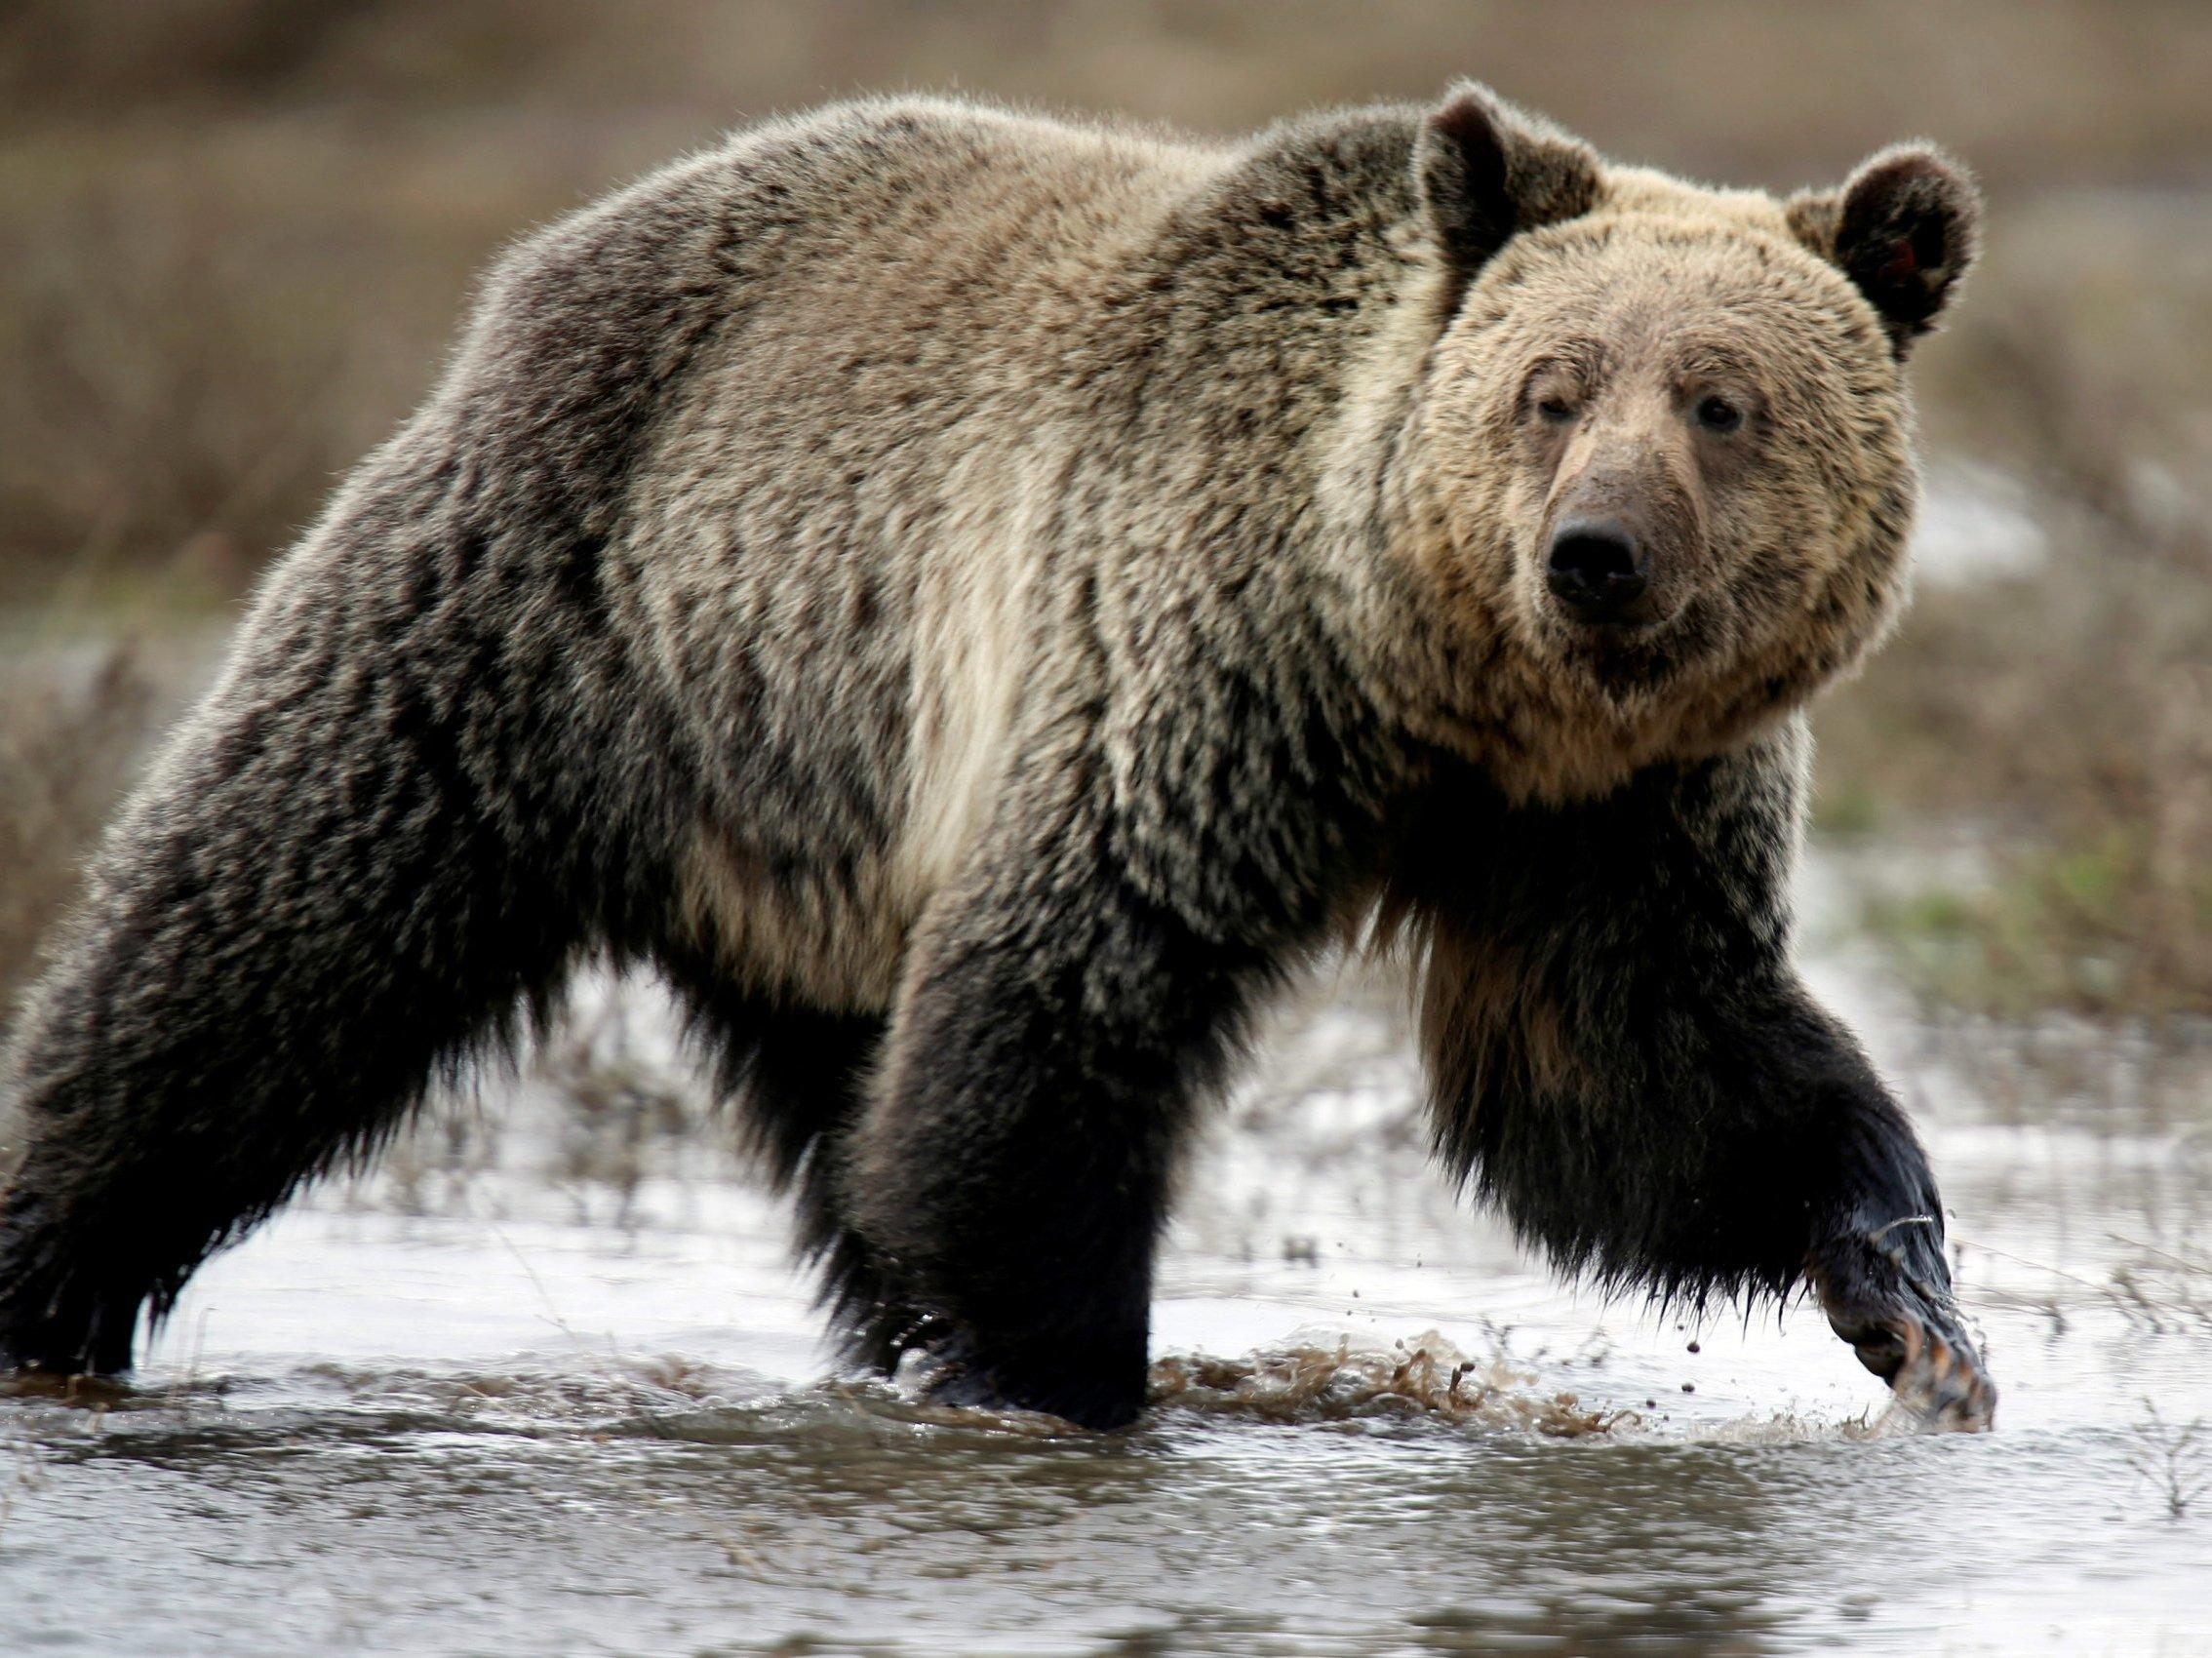 Judge blocks Trump administration's decision to allow grizzly bear hunting